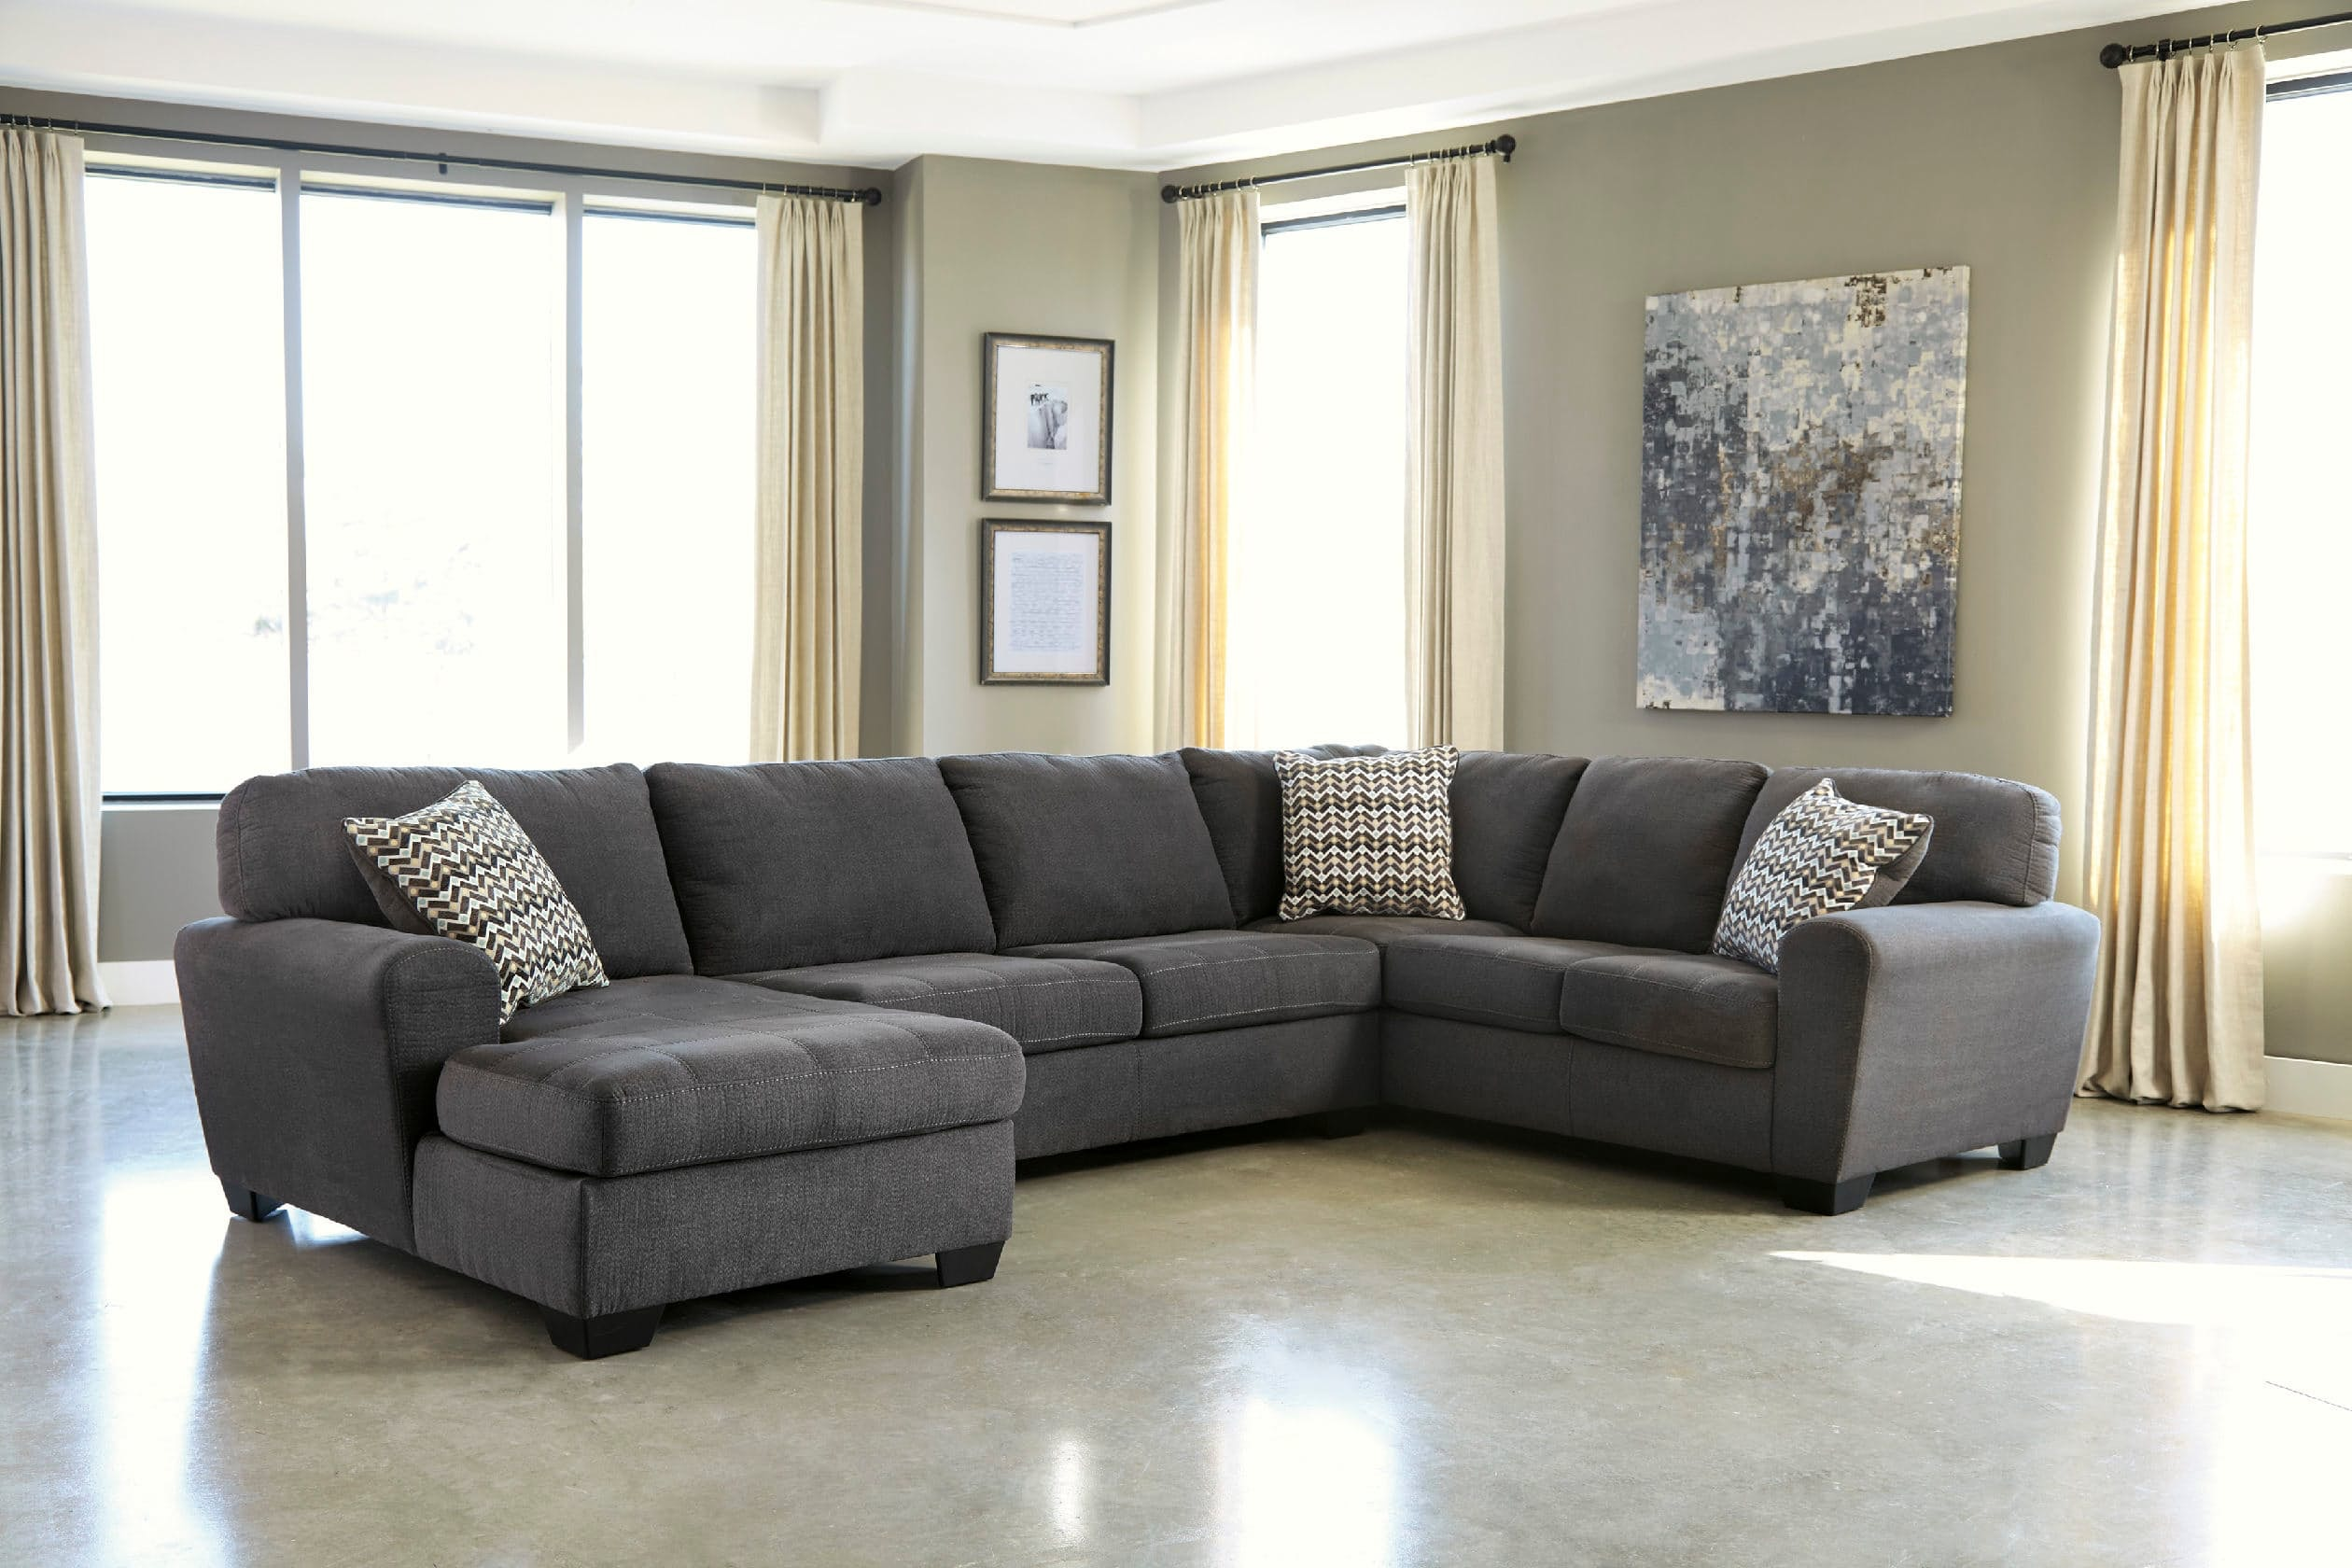 Signature Design By Ashley 4pc Right Sofa Sectional With Ottoman  28600 16/34/